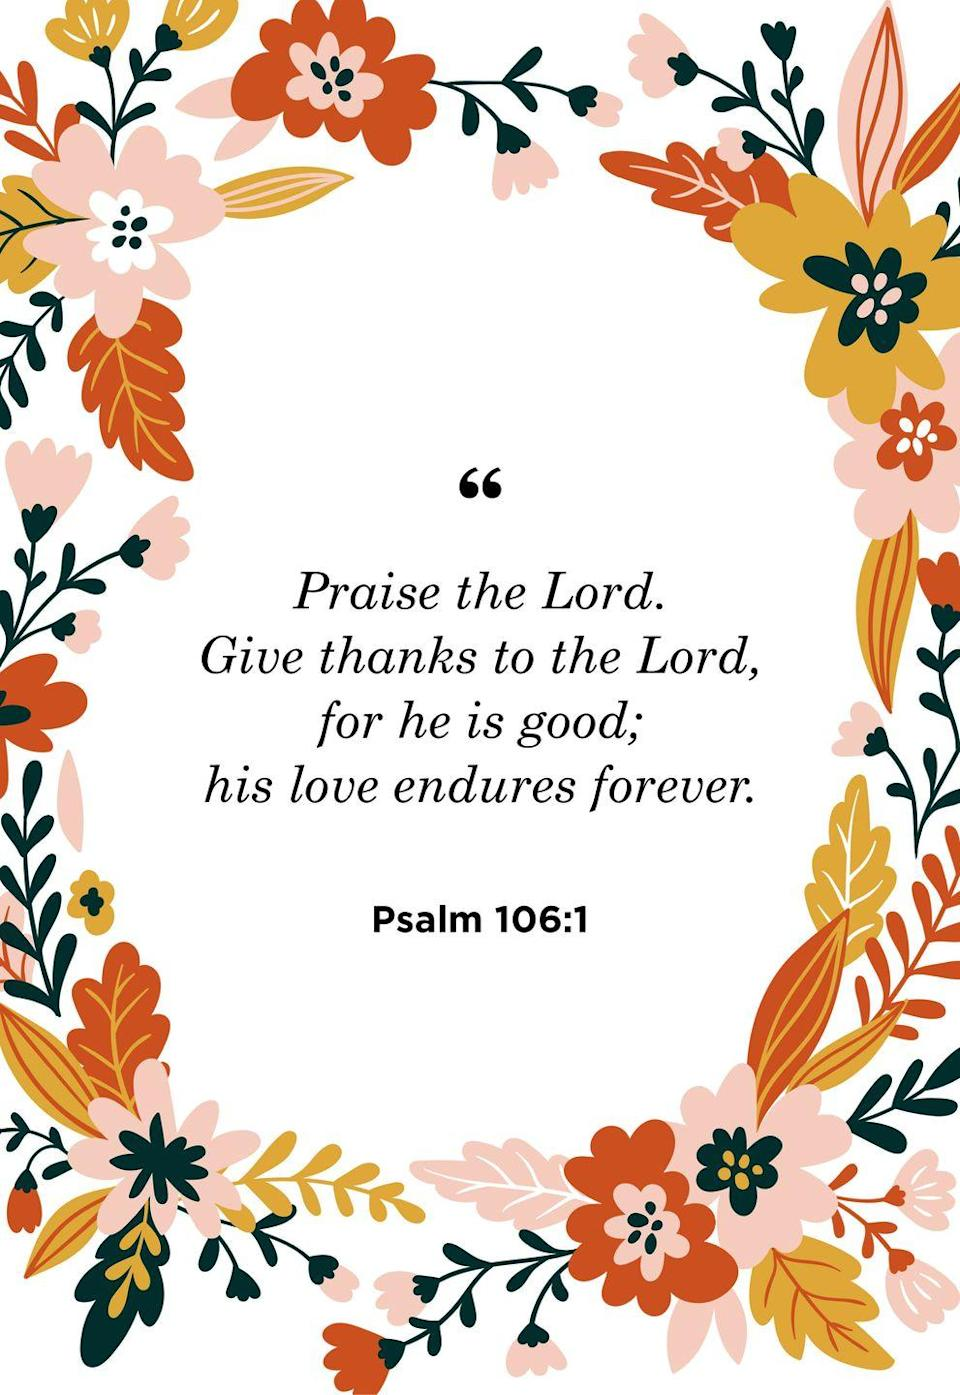 """<p>""""Praise the Lord. Give thanks to the Lord, for he is good; his love endures forever.""""</p>"""